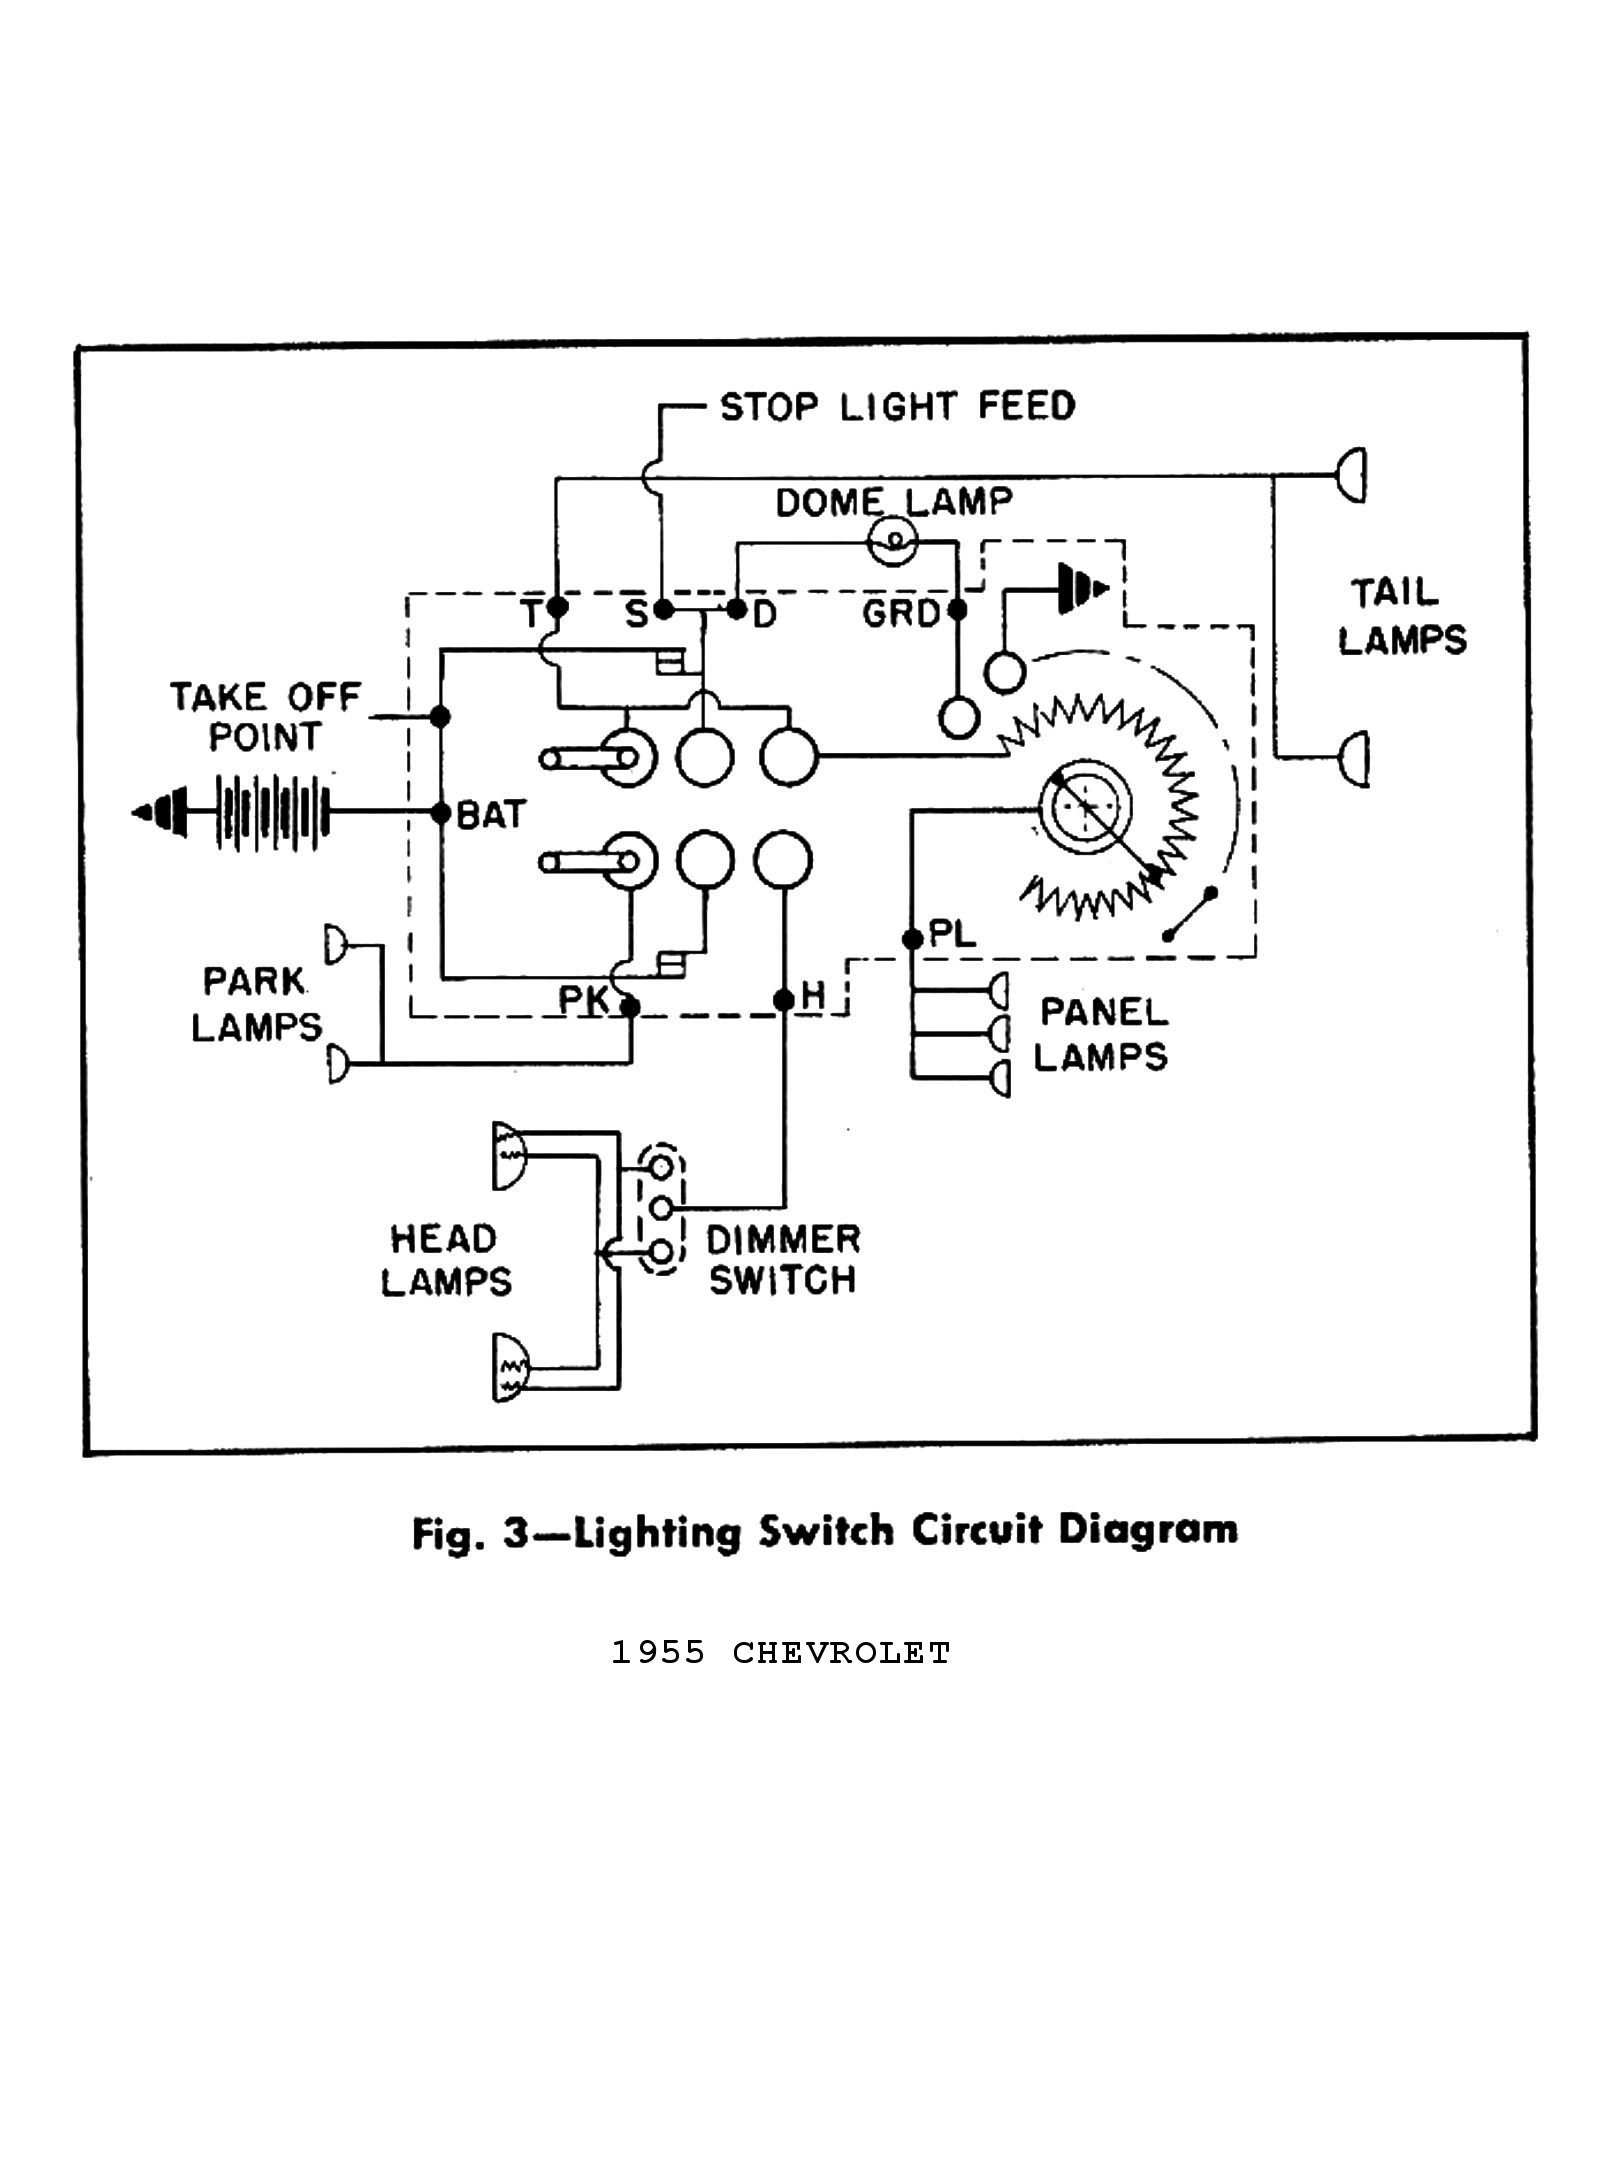 Gm Dome Light Wiring - Wiring Diagram Progresif  Vw Dome Light Wiring Diagram on 1957 vw wiring diagram, 1970 vw beetle wiring diagram, 1960 vw steering, 1960 vw headlights, 1960 vw fuel tank, 1960 vw engine, 67 vw wiring diagram, 1979 vw beetle wiring diagram, 1968 vw beetle wiring diagram, 1960 vw motor, 1973 vw wiring diagram, 1972 vw wiring diagram, 70 vw wiring diagram, 1969 vw wiring diagram,